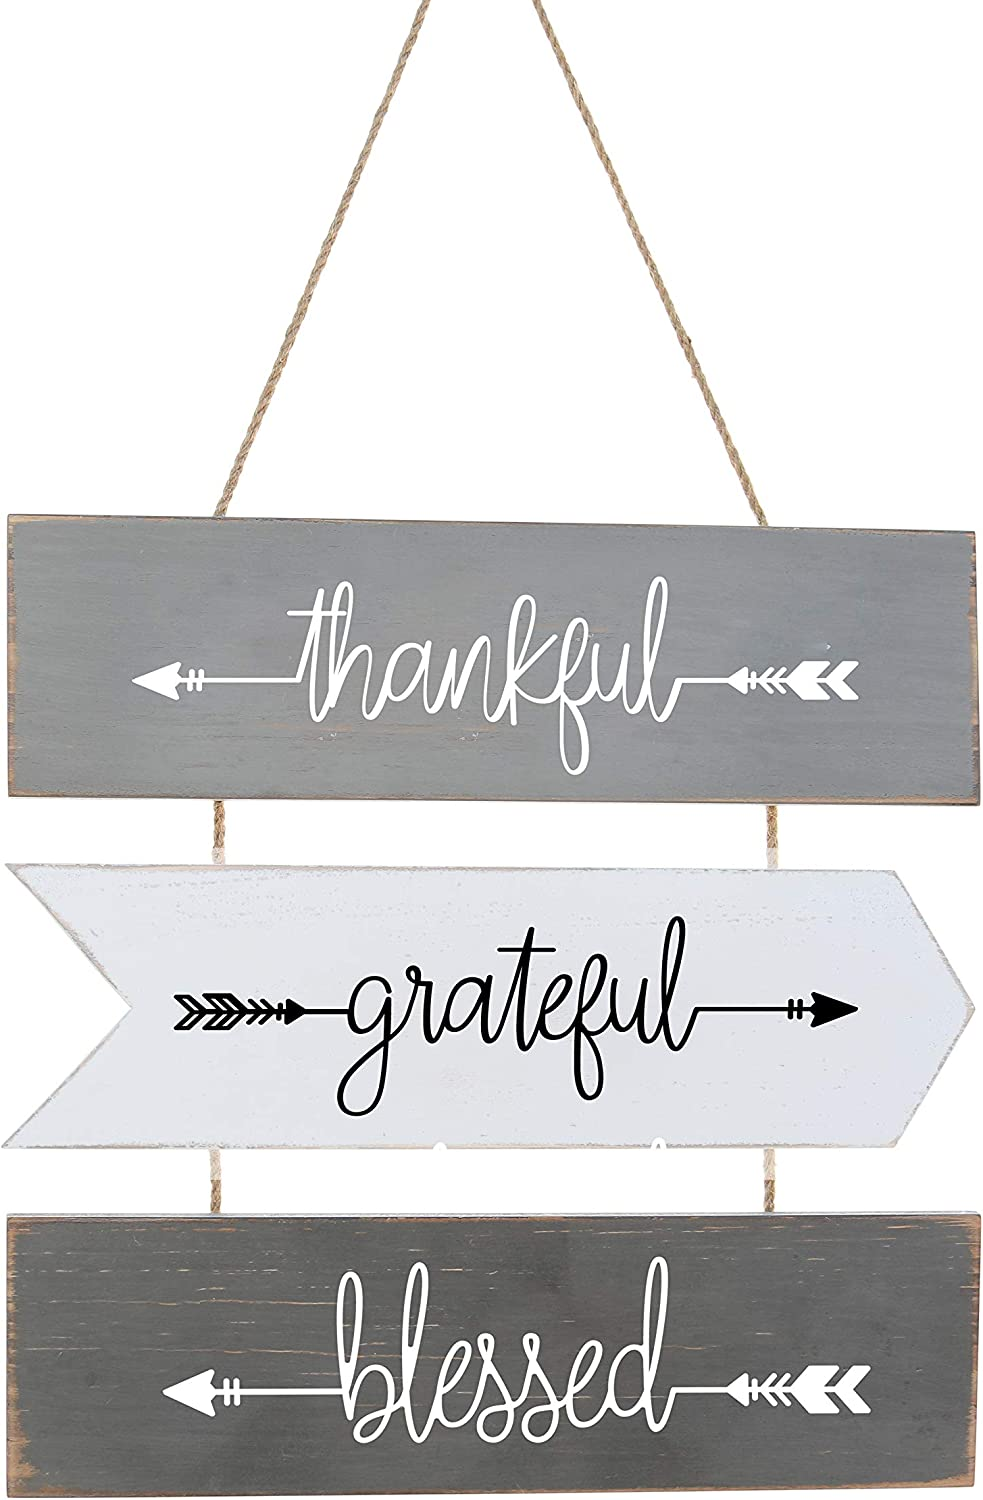 "Hanging Wall Sign 3-Set | Rustic Wall Decor, Welcome Sign Wall Art | Farmhouse Home Living Room Kitchen Decorations | House Warming Presents for Couple 18"" X 15"" (Gray)"